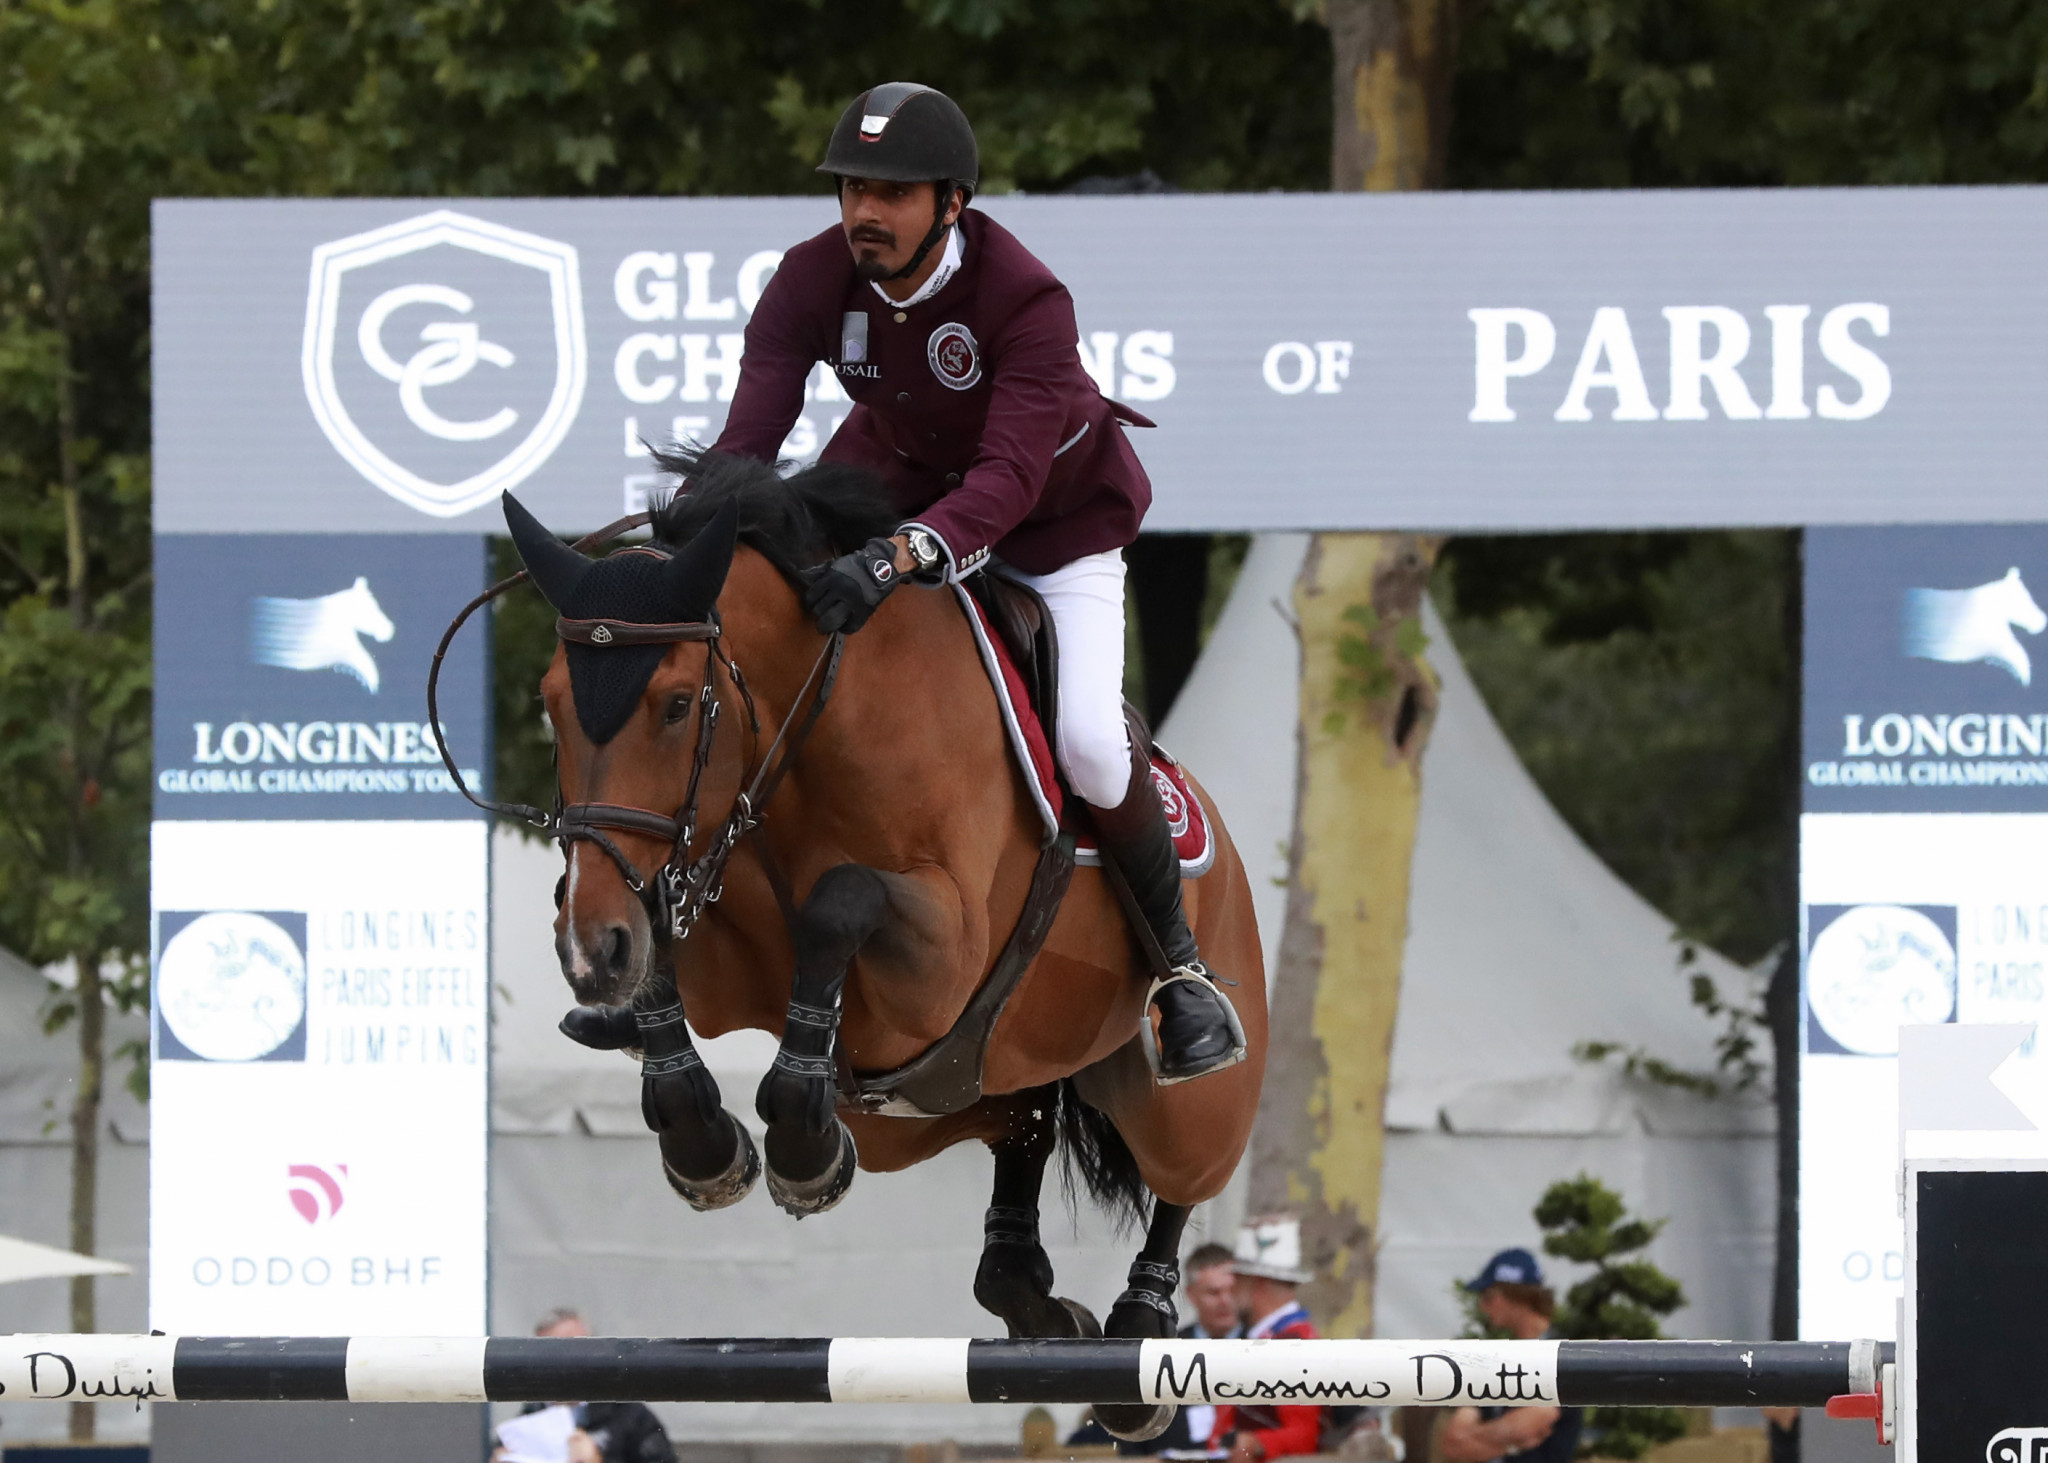 Qatar's Sheikh Ali Al Thani was one of two riders to test for a banned substance, leading to Morocco taking his nation's place at Tokyo 2020 ©Getty Images